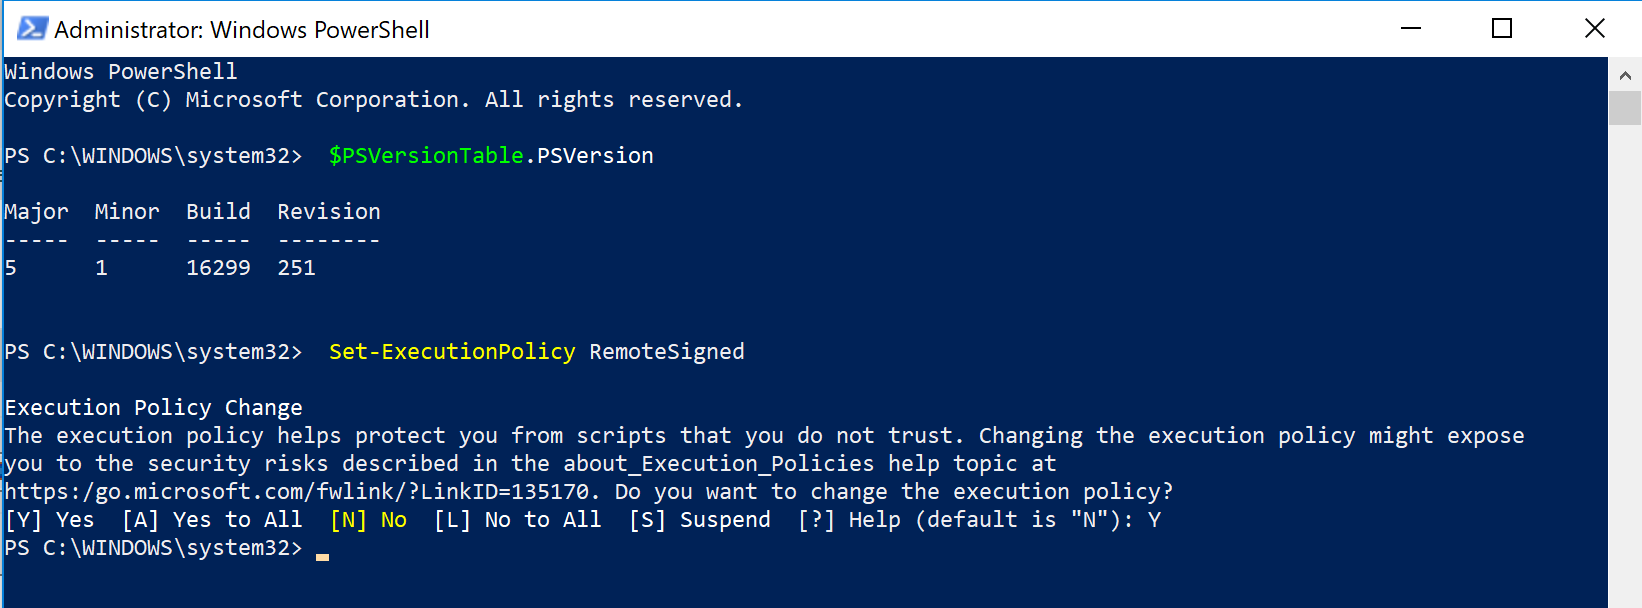 Configuration of a Run Command Tool in Alteryx to run a PowerShell